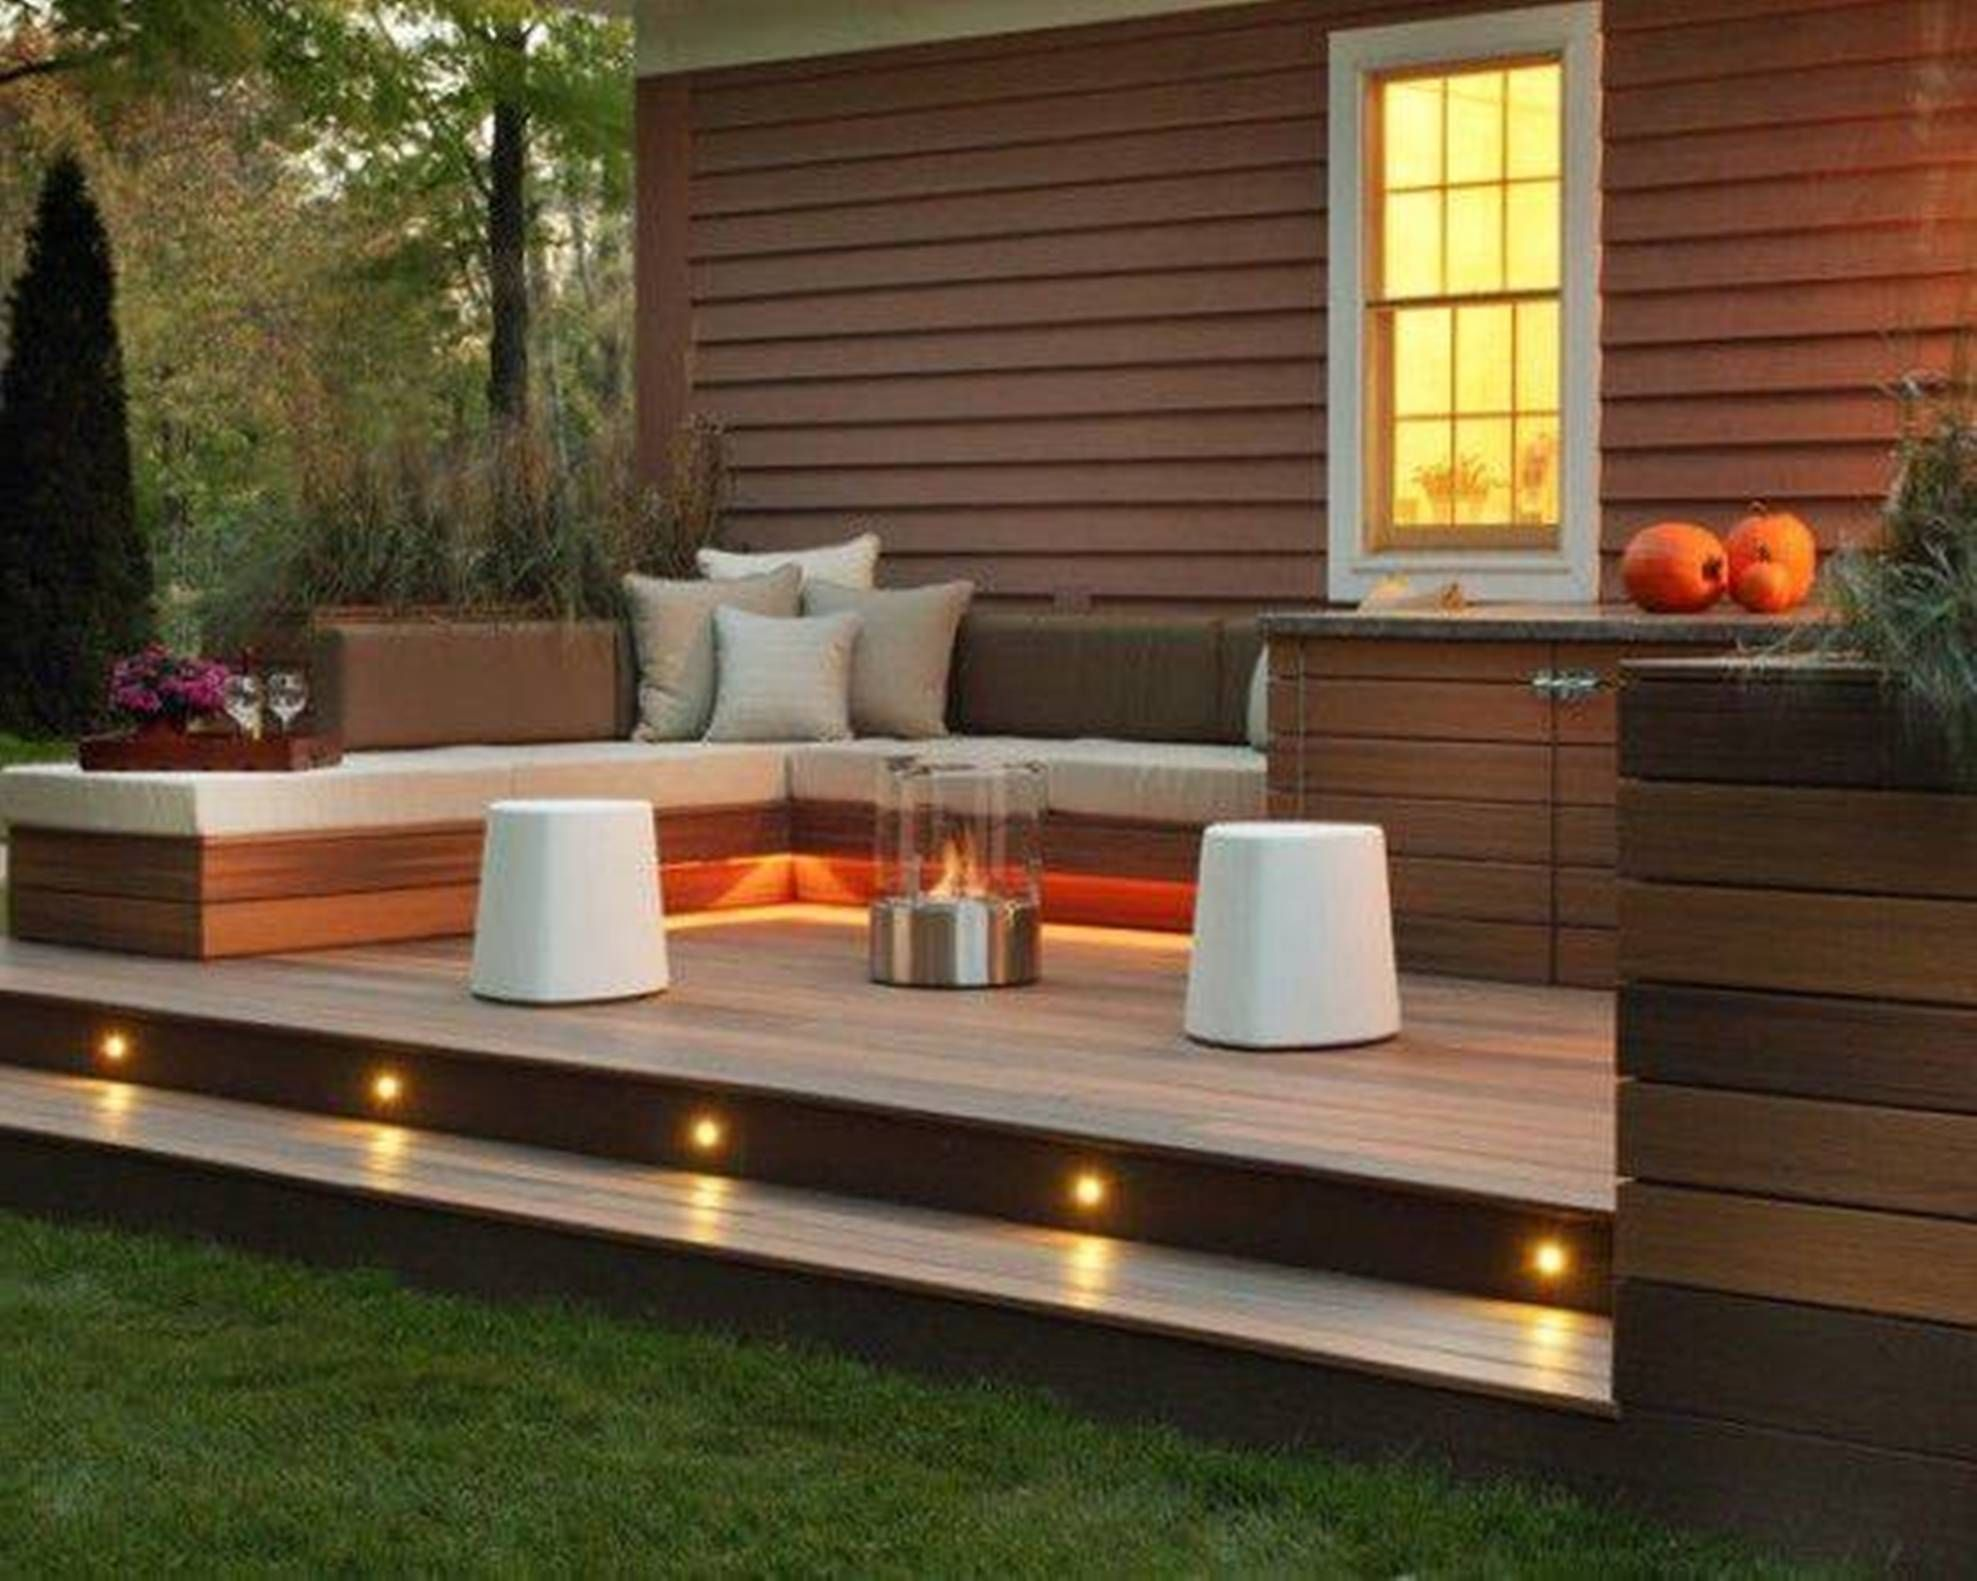 Decks Design Ideas great deck ideas patio deckdesigns deck design ideas simple small Landscaping And Outdoor Building Great Small Backyard Deck Designs Small Backyard Deck Designs With